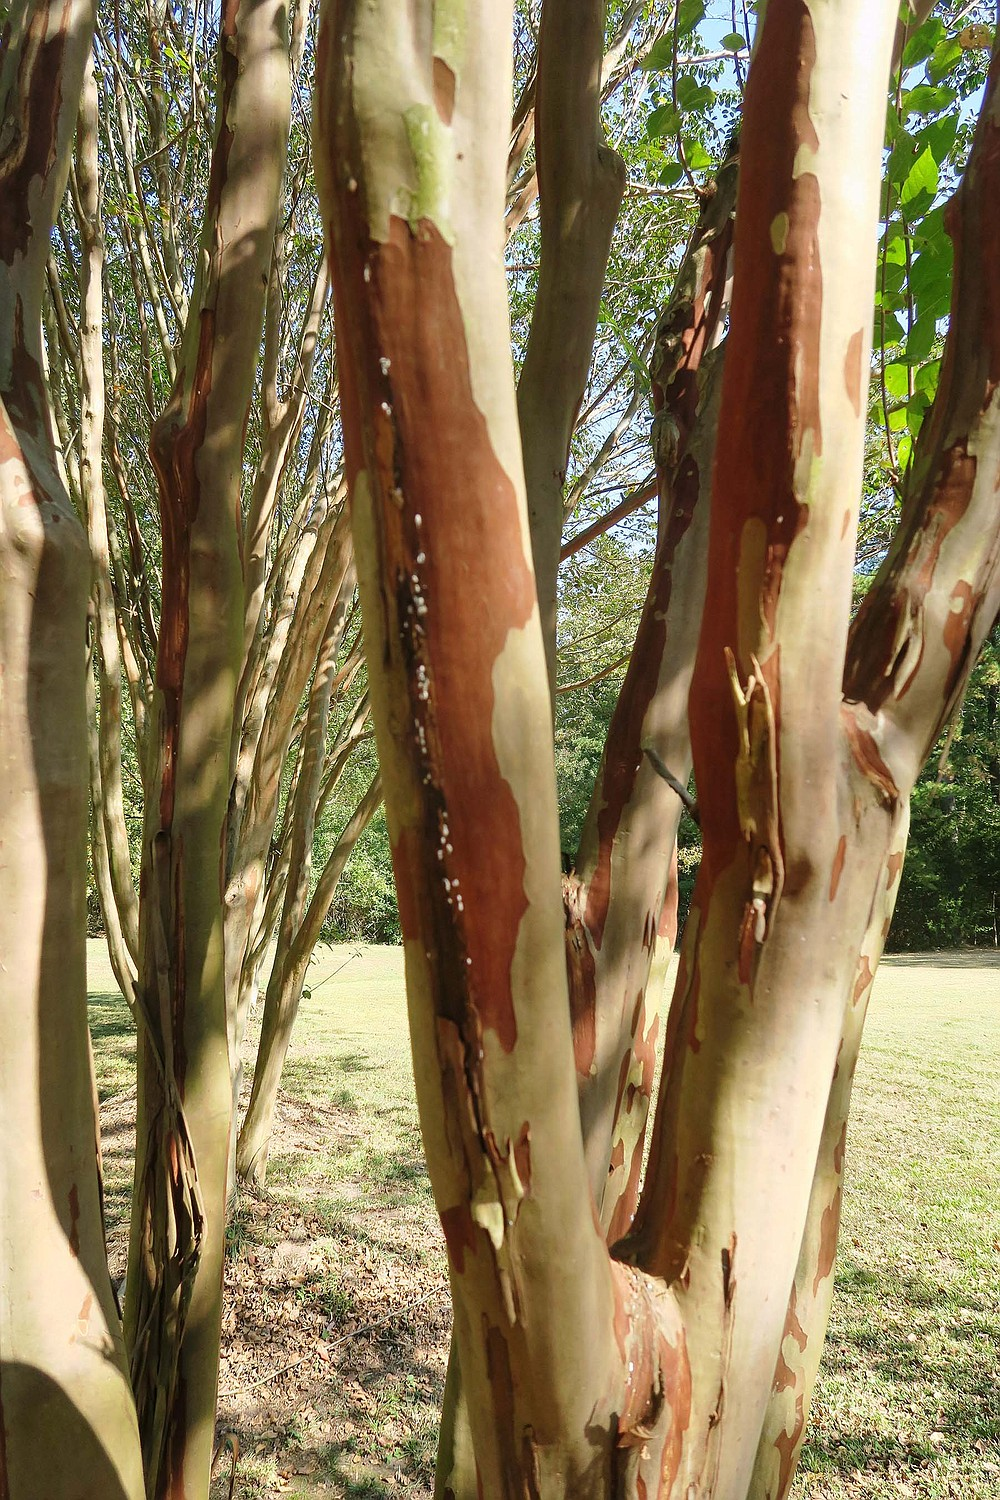 The bark of crape myrtles begins to peel when the trees reach maturity. (Special to the Democrat-Gazette/Janet B. Carson)